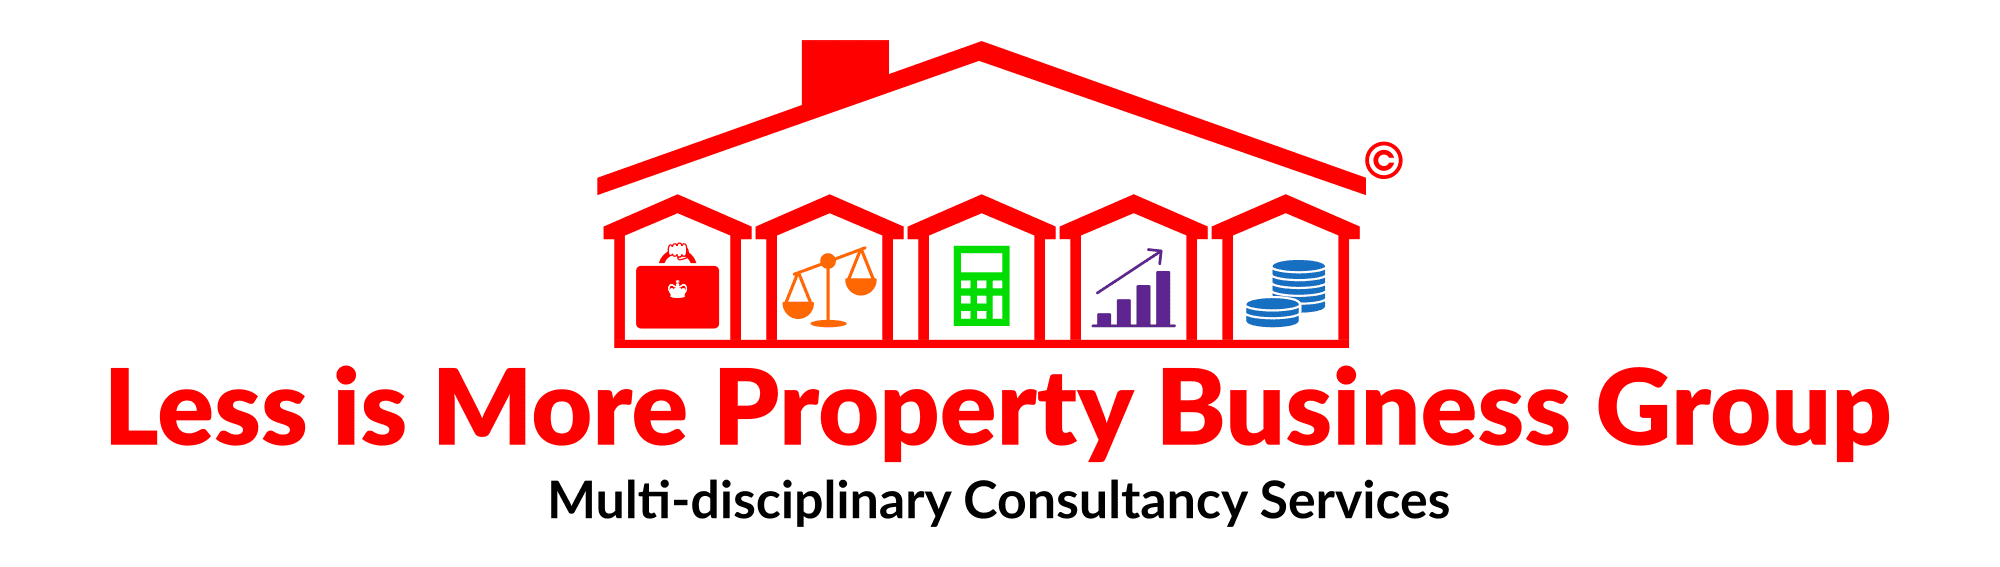 Less Is More Property Business Group